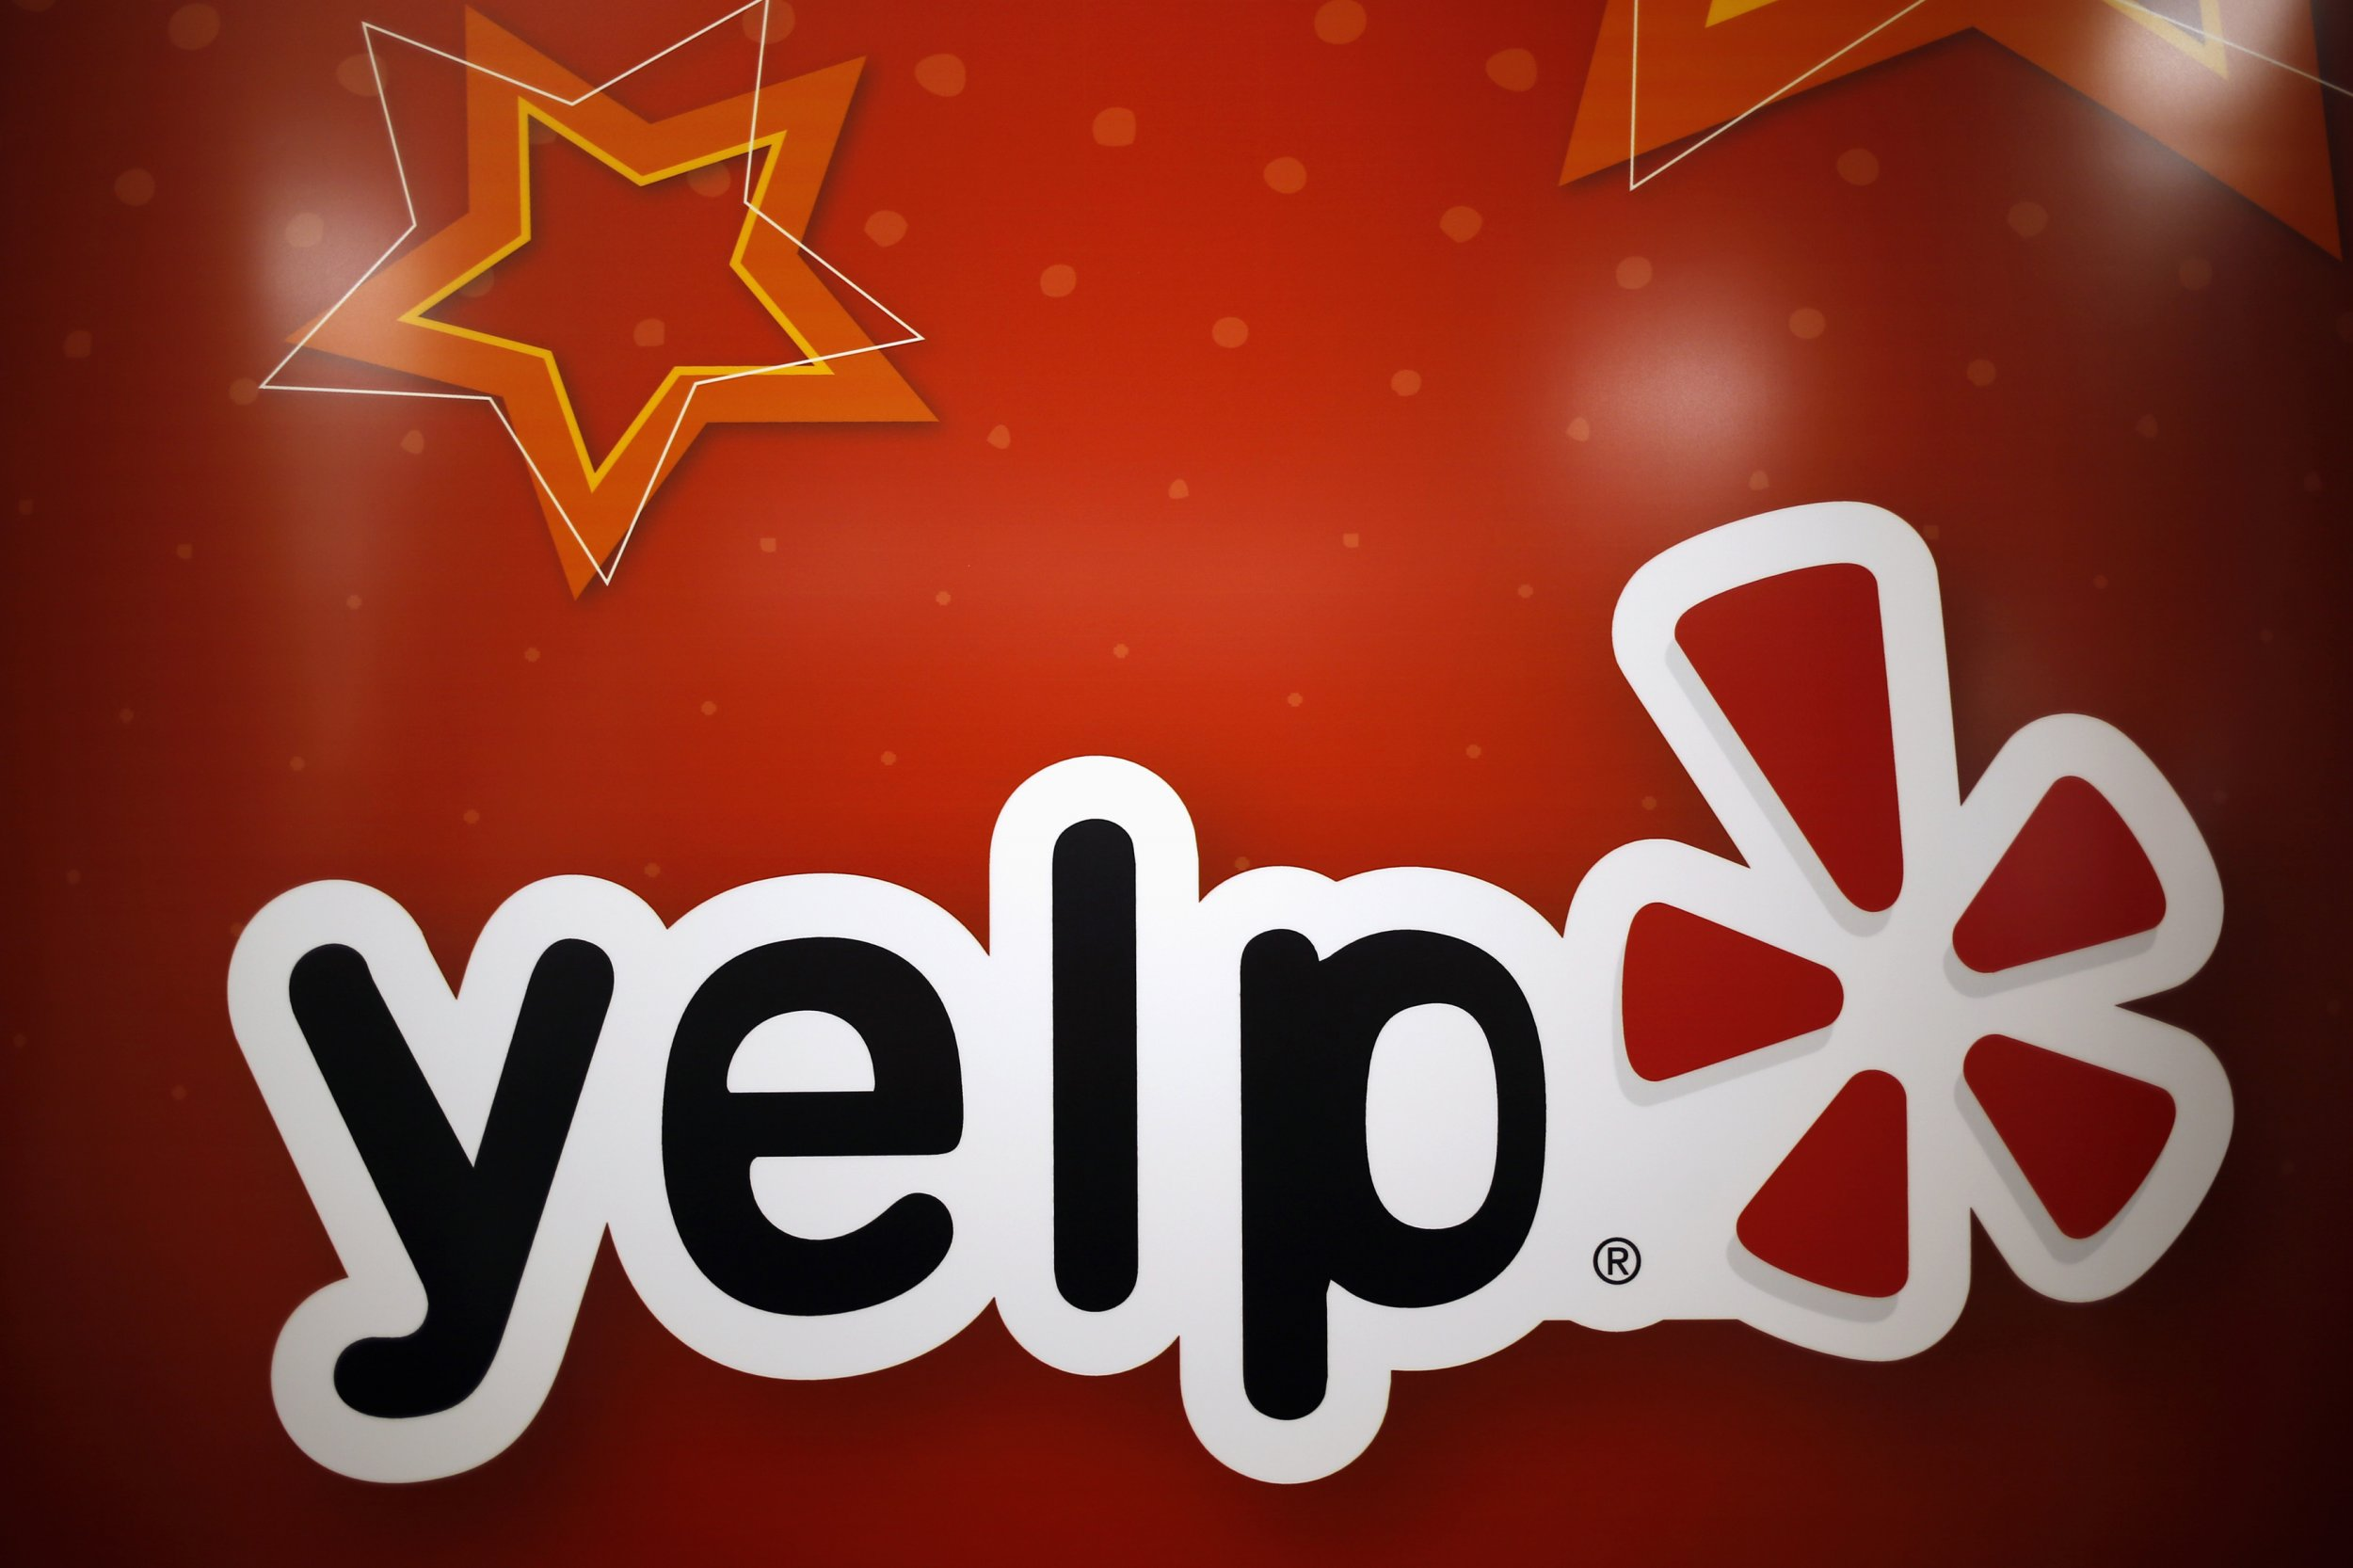 Yelp Bolsters Health Care Reviews With Investigative Journalism